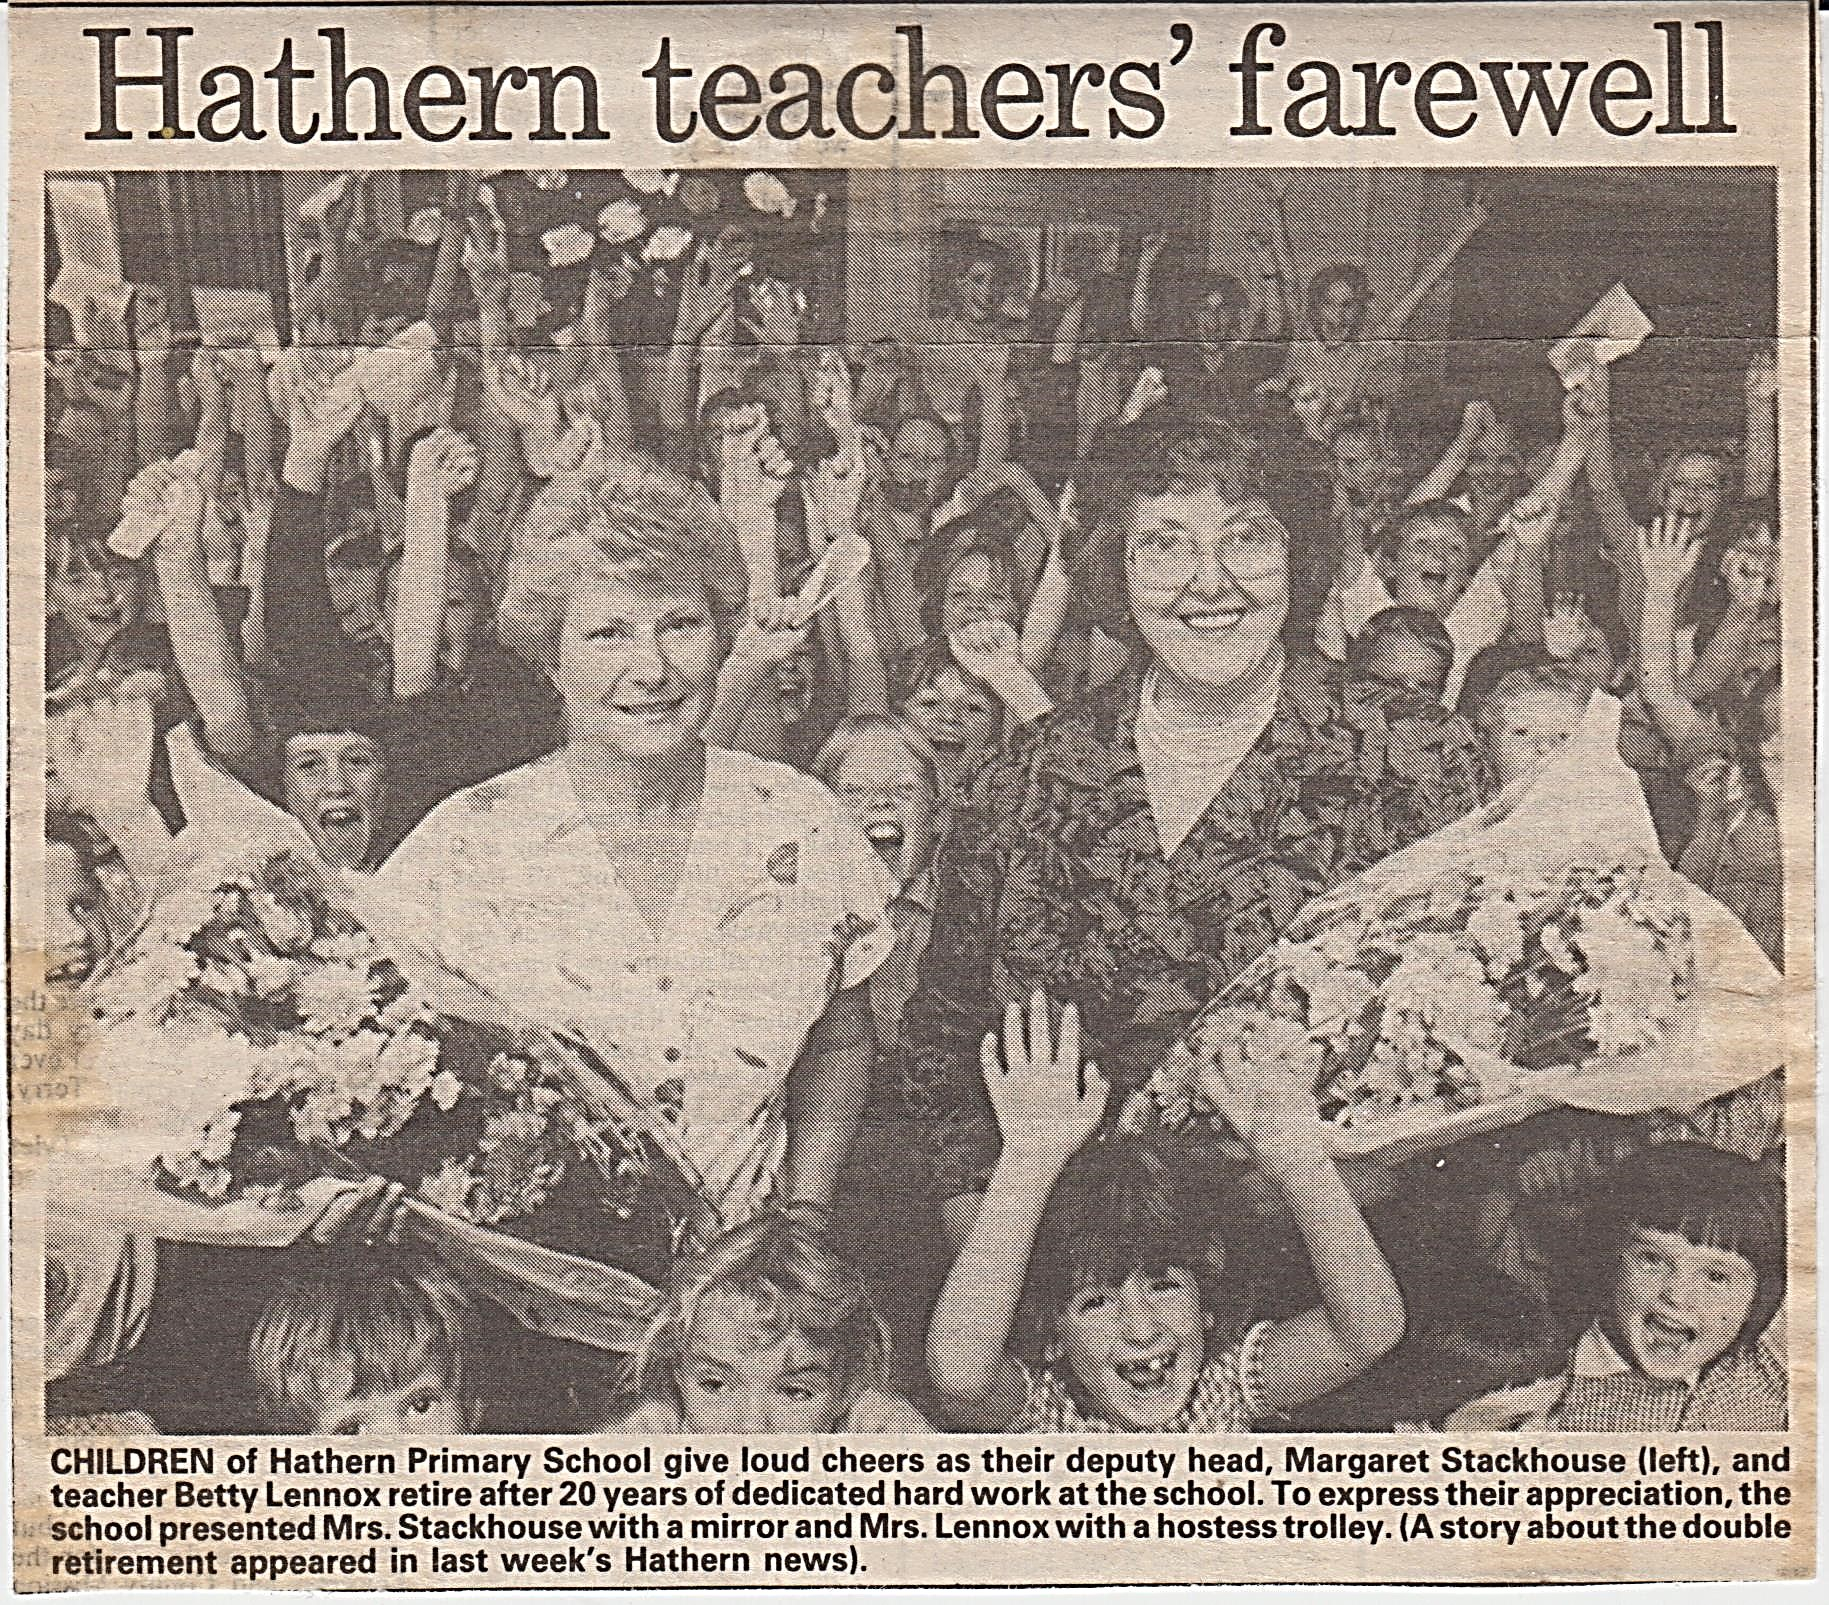 teachers_farewell_001.jpg